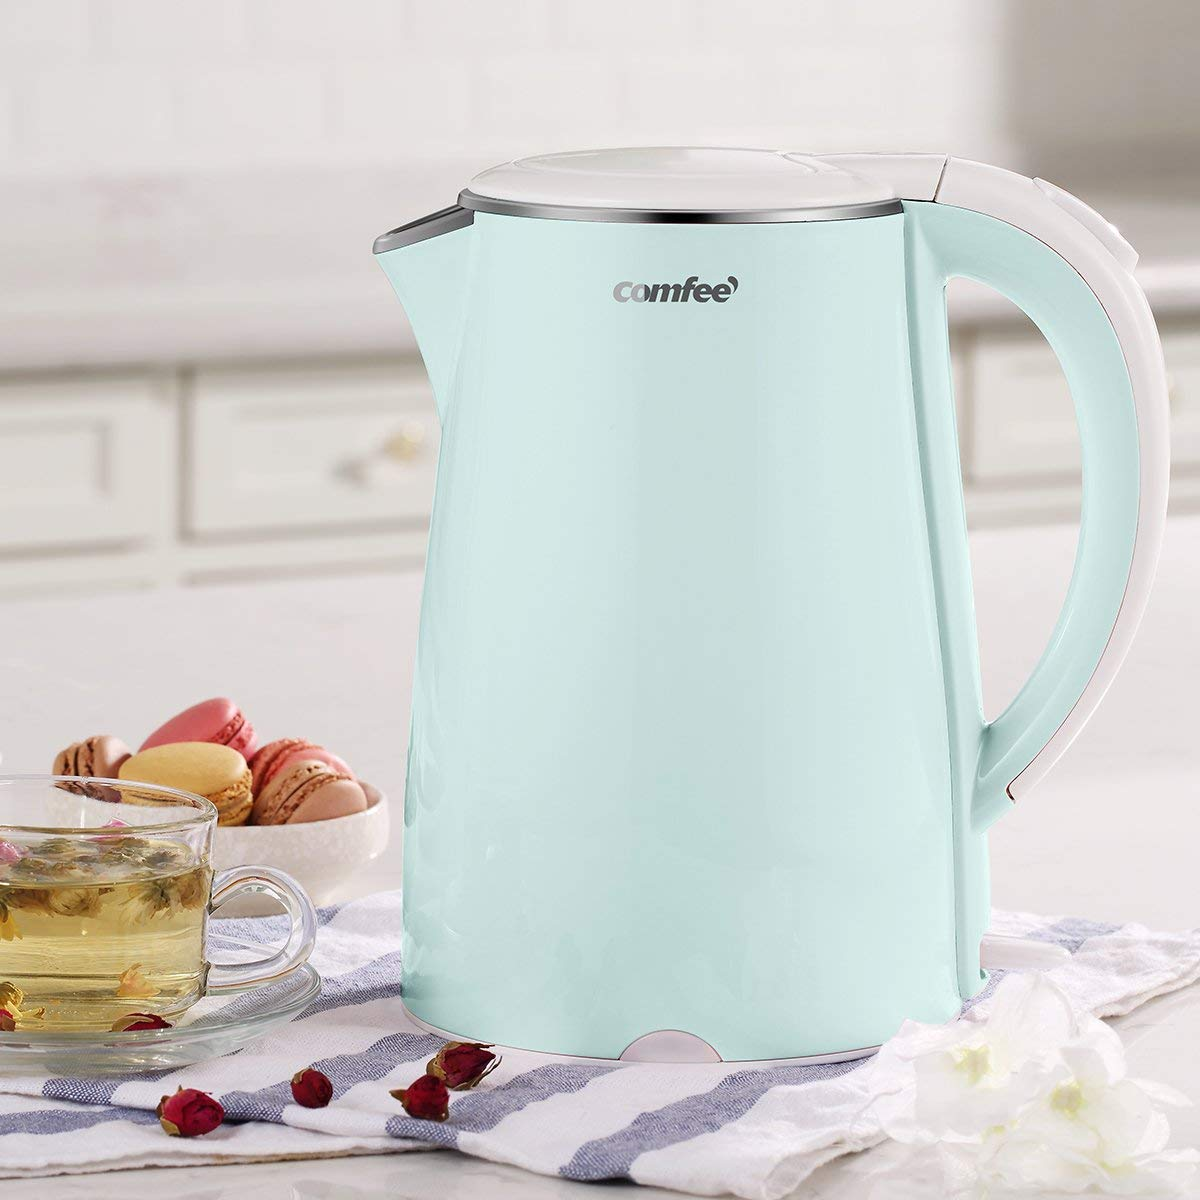 [US Direct] Original COMFEE' Electric Kettle Teapot, 1500W Fast Water Heater Boiler, 1.7 Liter, BPA-Free, Quiet Boil & Cool Touch Series, Auto Shut-Off (Blue) Mint Green